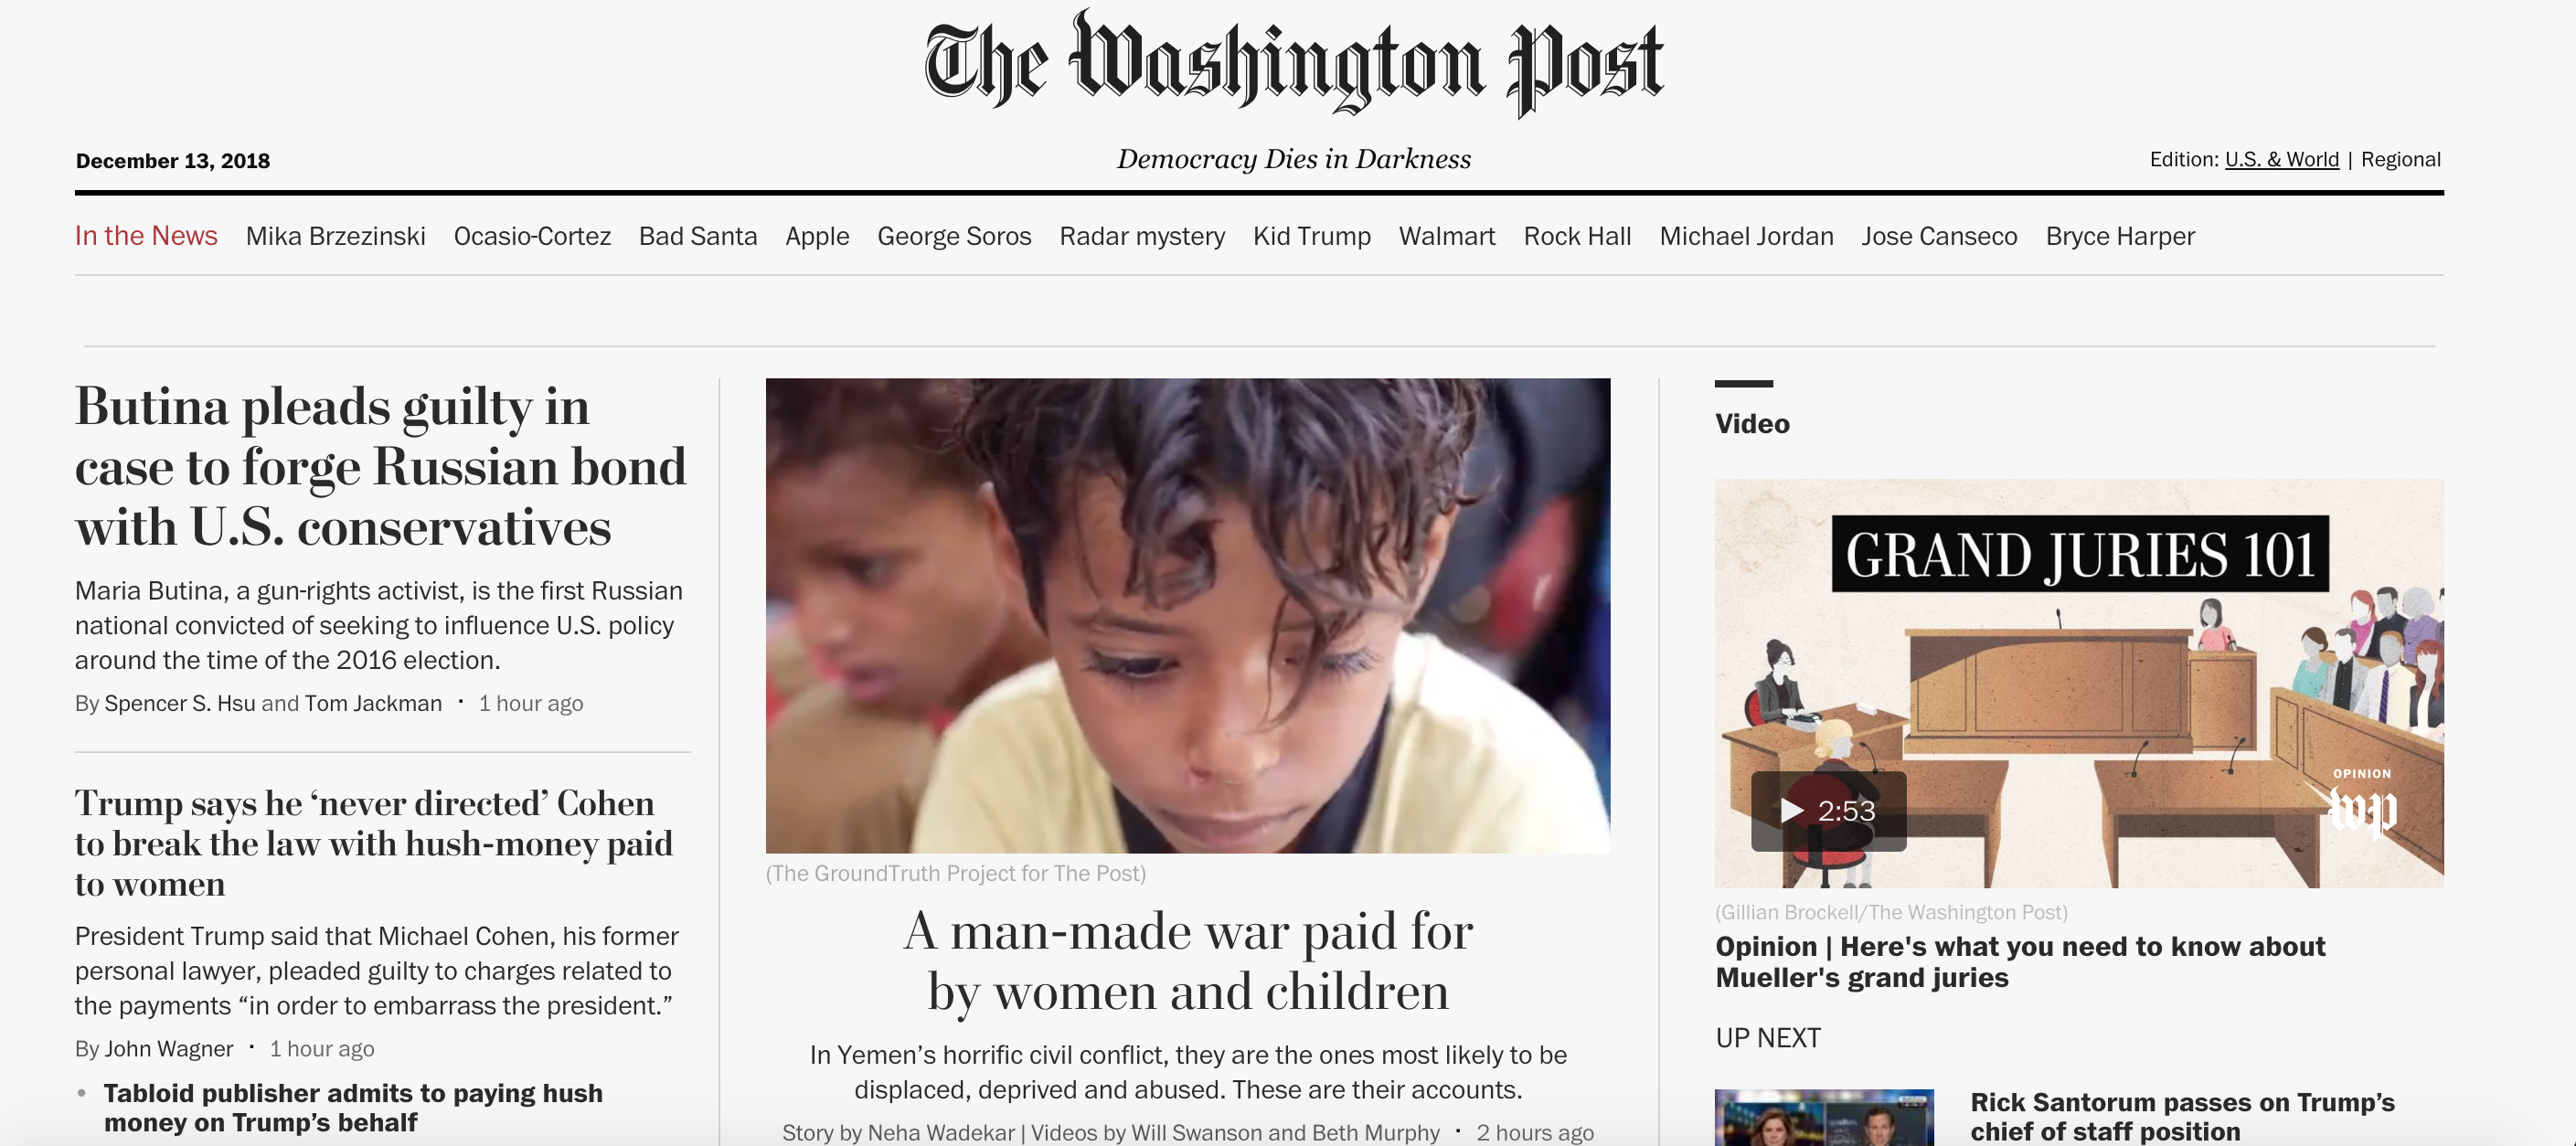 A Man-Made War Paid for by Women and Children – Washington Post (image)